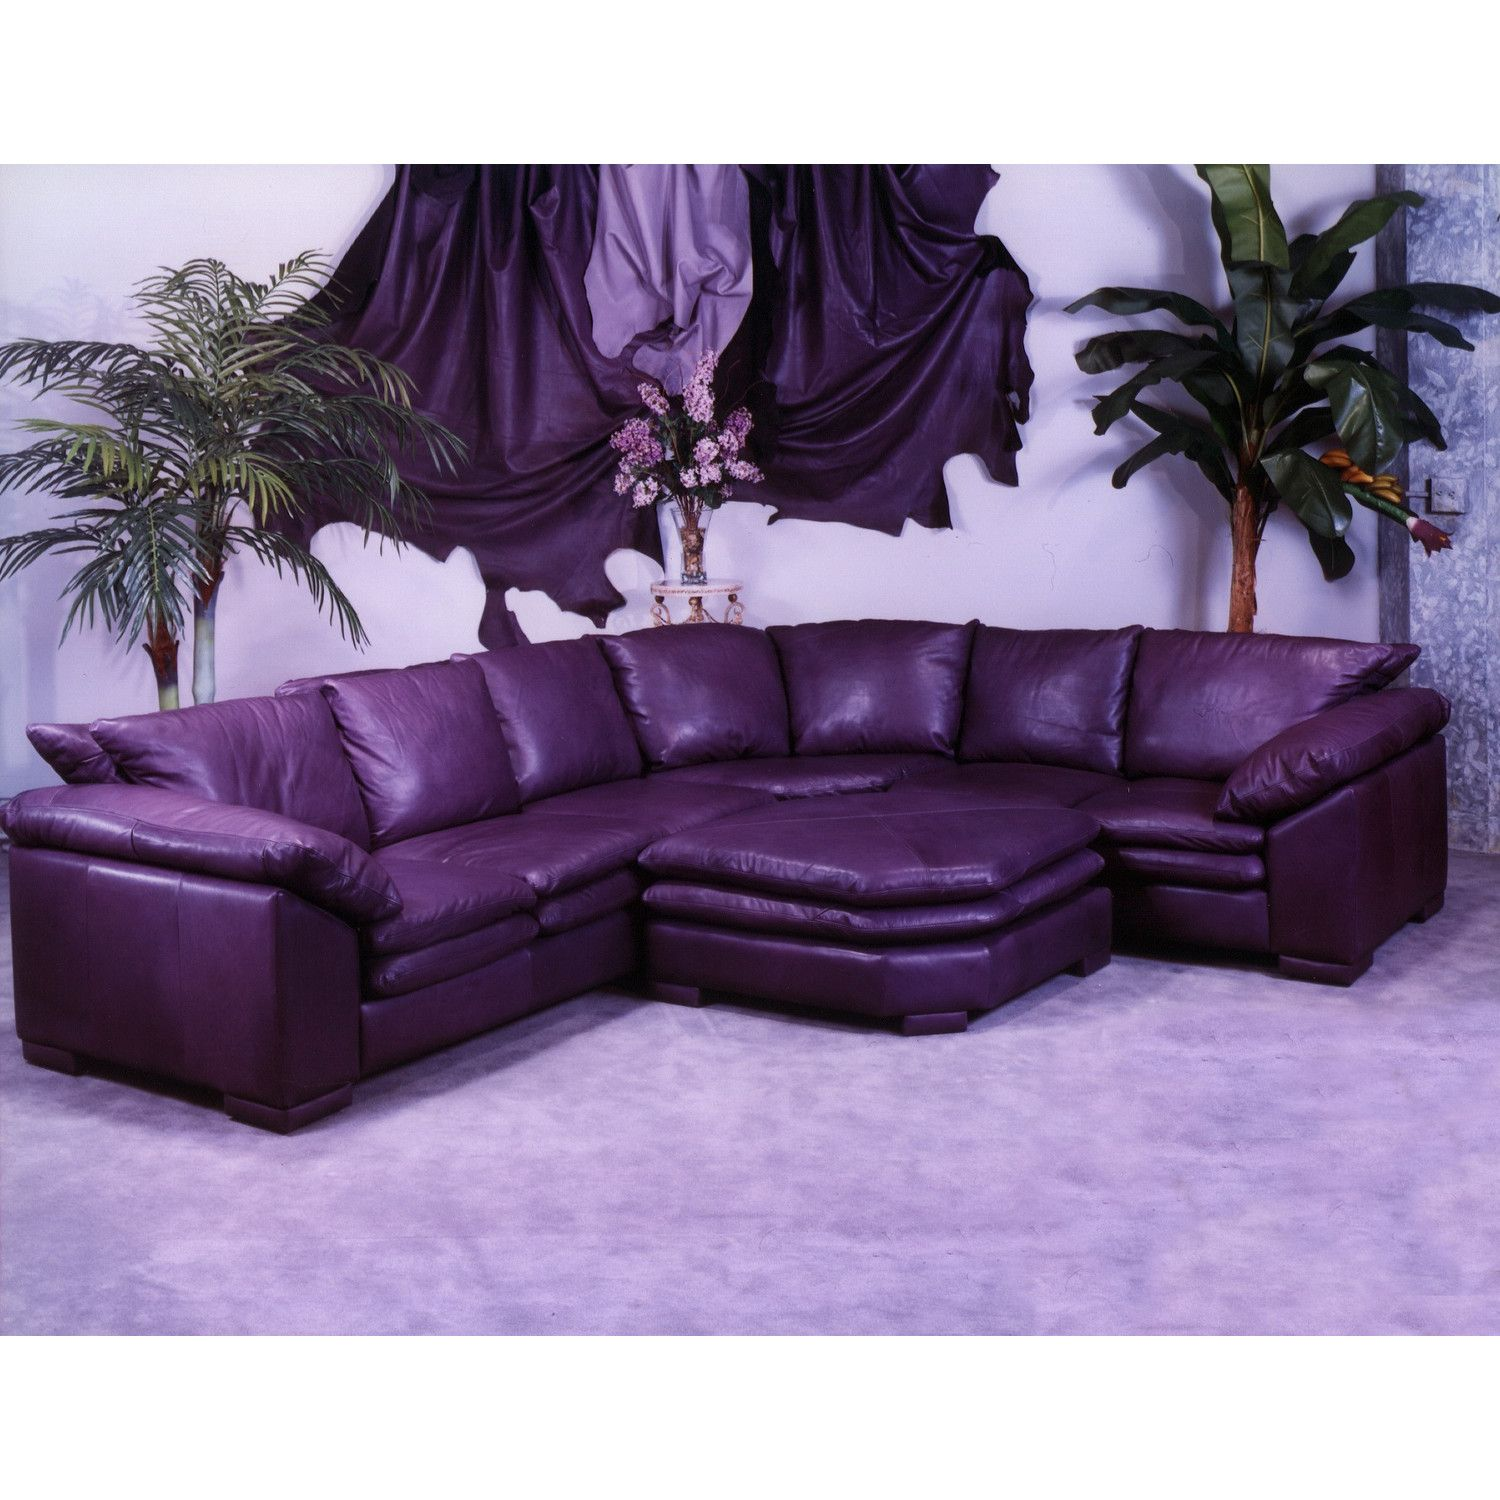 Incredible Fargo Leather Sectional With Ottoman In 2019 All Things Pabps2019 Chair Design Images Pabps2019Com